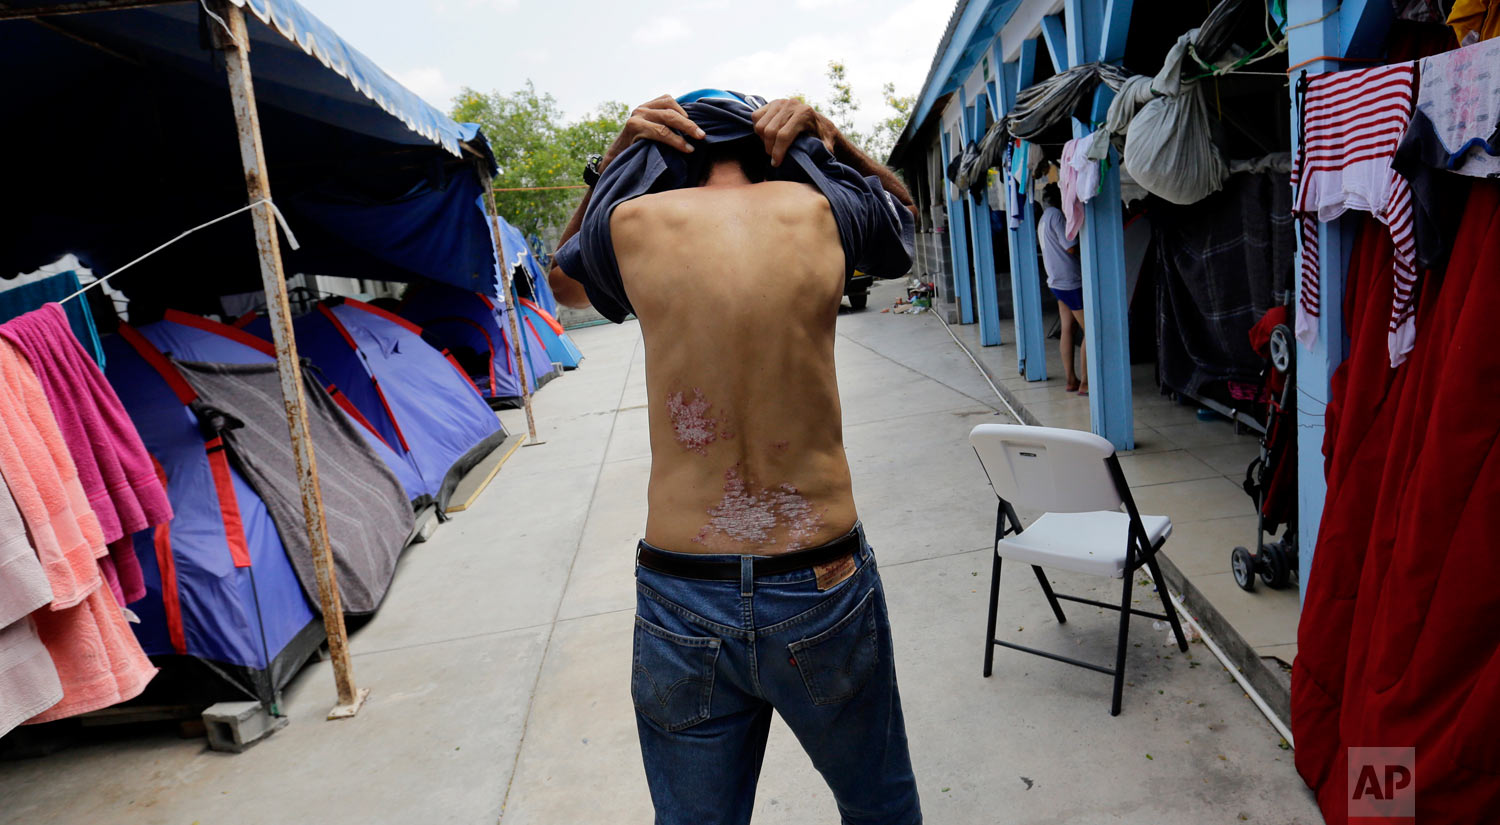 Jose Alfredo Diaz Reyes, 60, of Honduras, shows scarring on his lower back that he says is from an attack by suspected gang members in his native country while waiting at the Senda de Vida shelter in Reynosa, Mexico, May 1, 2019. (AP Photo/Eric Gay)